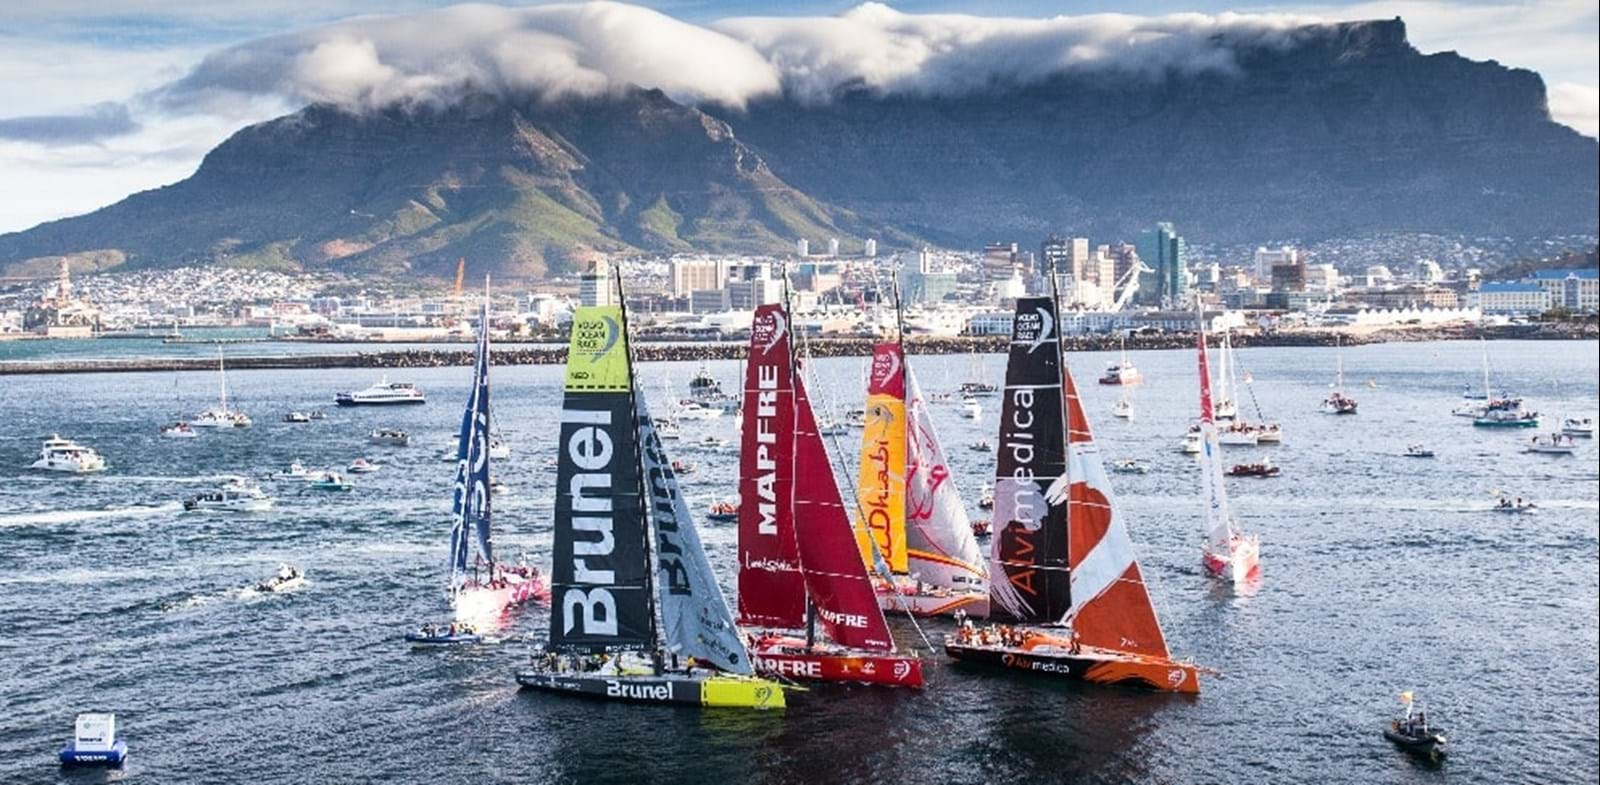 SUNSET+VINE RETURNS AS GLOBAL DISTRIBUTION PARTNER OF VOLVO OCEAN RACE ACROSS PROGRAMMING, DIGITAL LIVE-STREAMING AND NEWS CONTENT